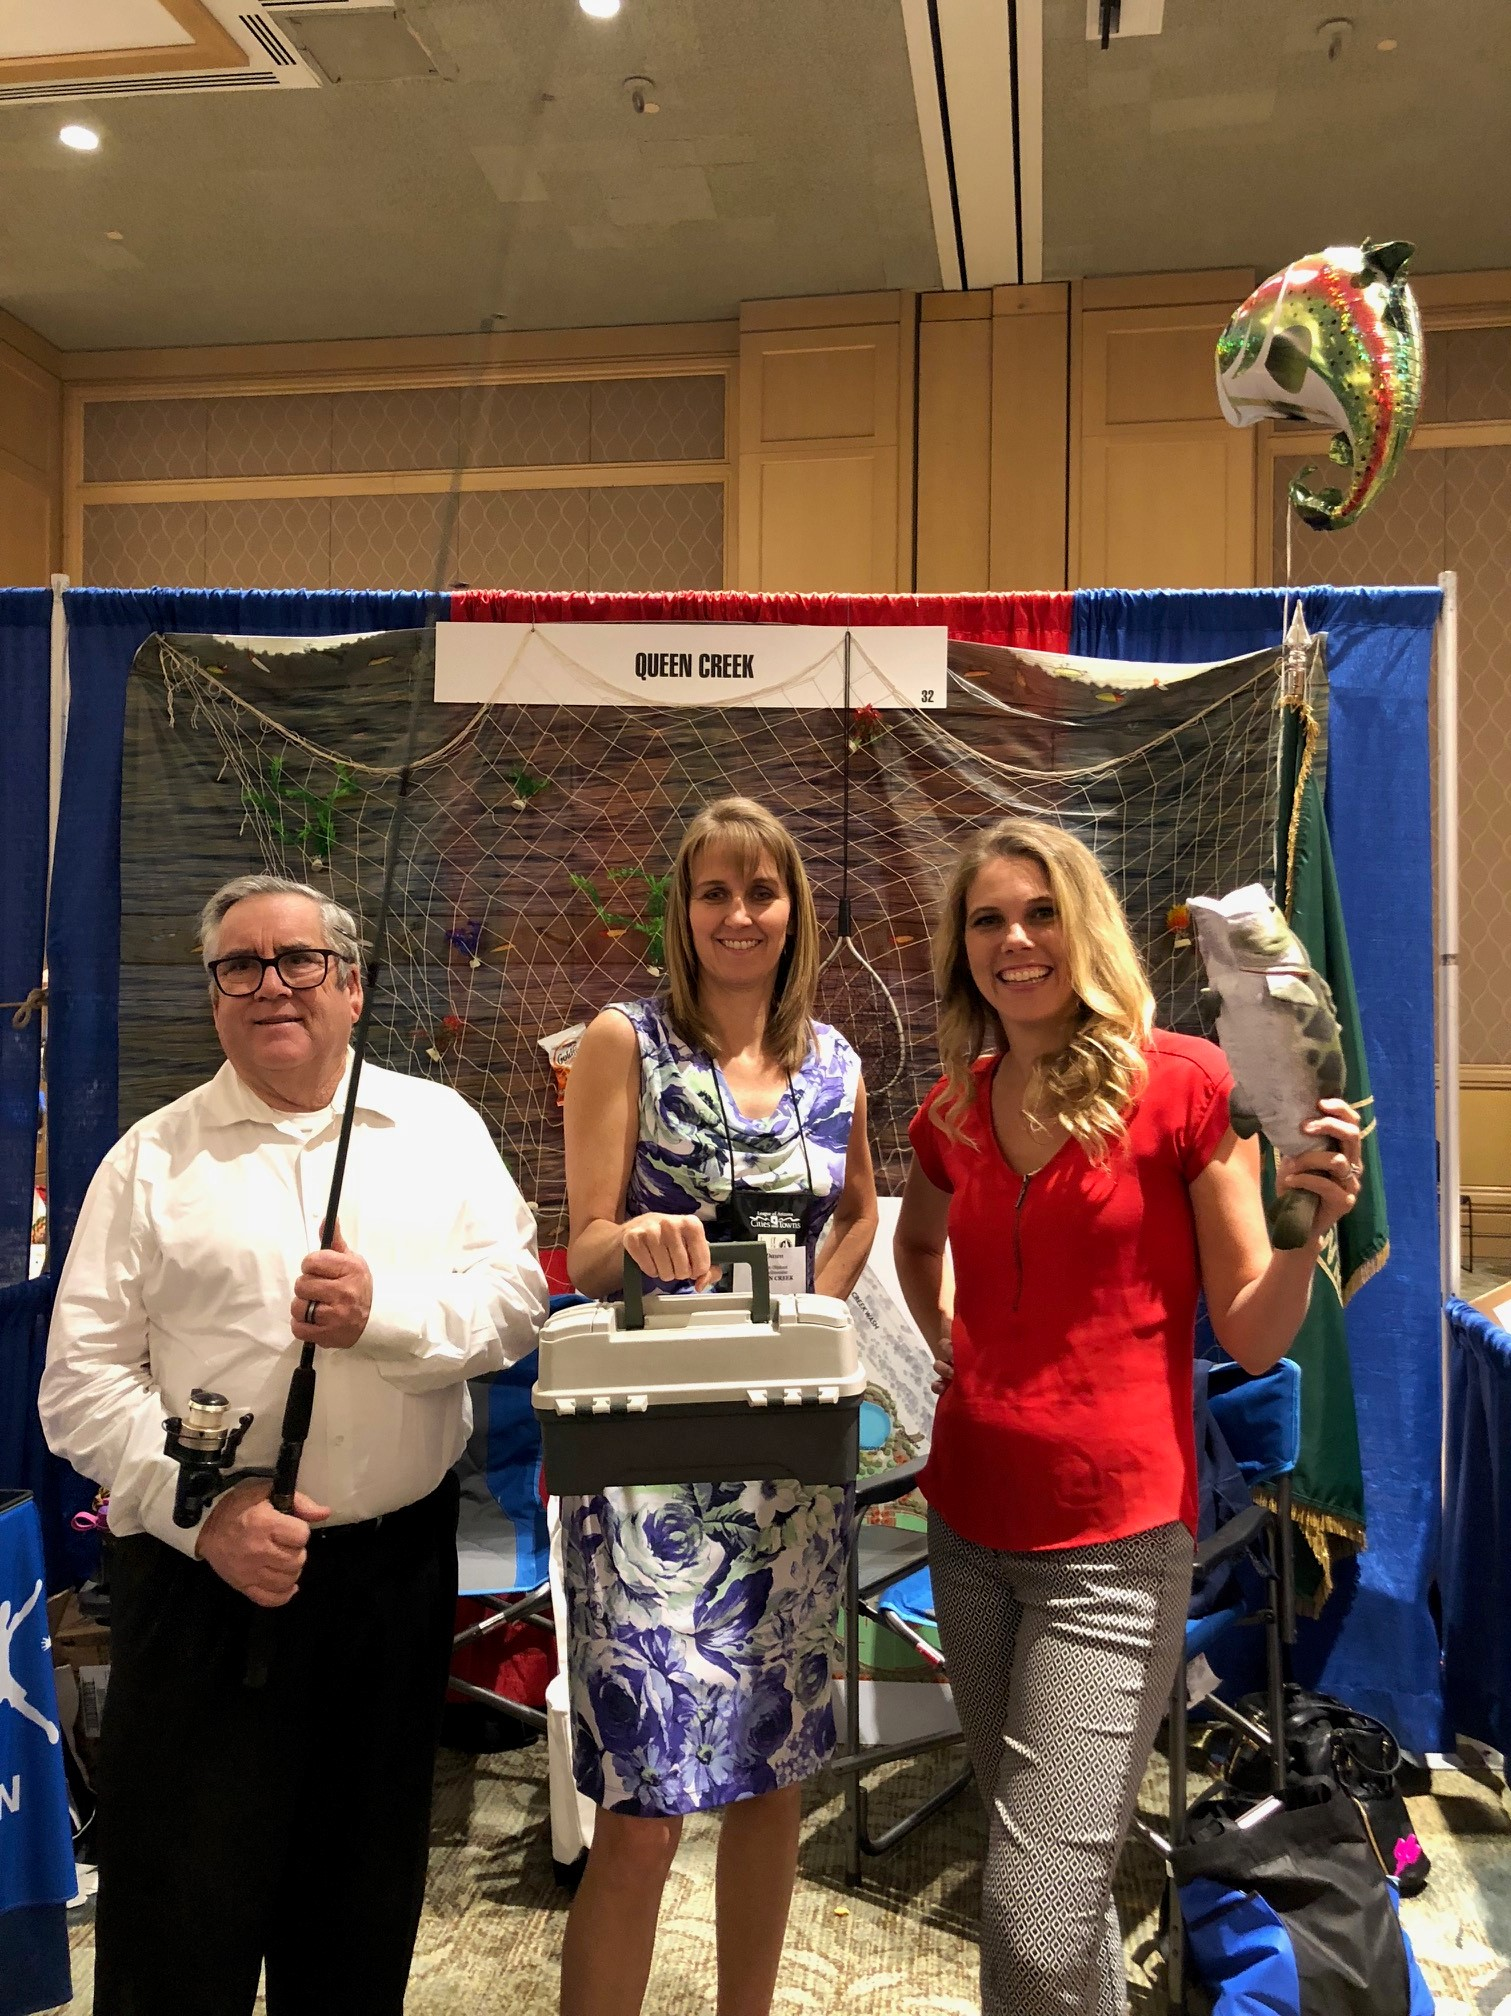 Mayor Barney with Council Members Oliphant and Wheatley at the Town Booth at the League of Arizona Cities and Towns Conference on August 23